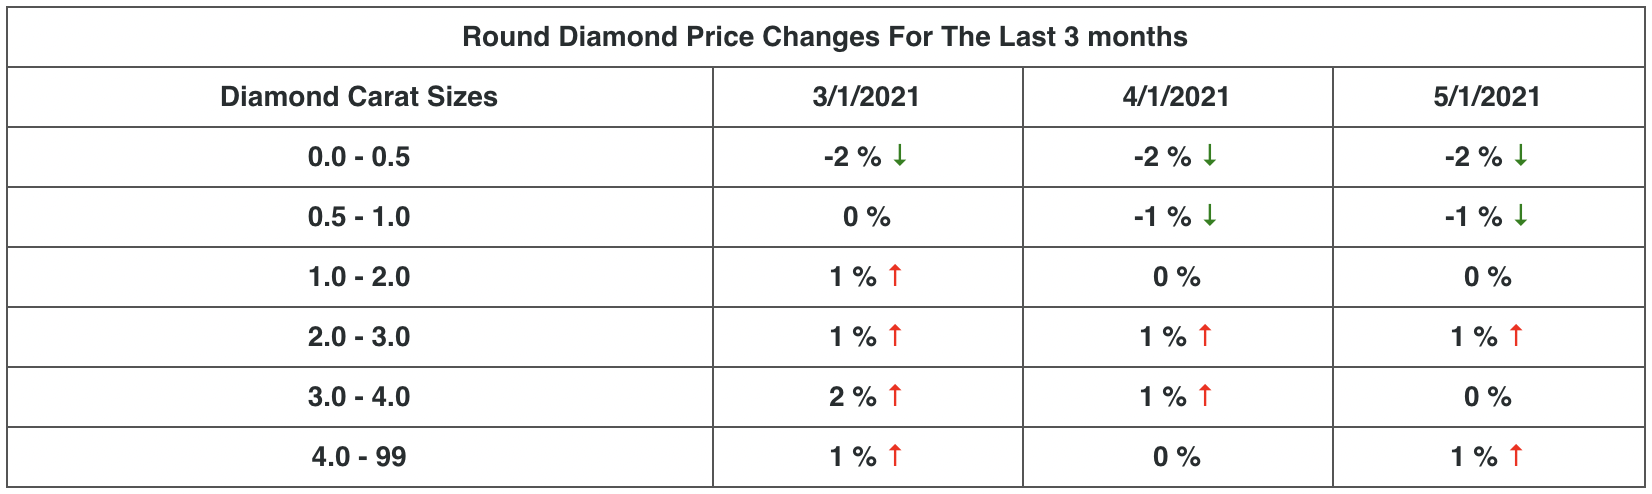 Round Diamond Price Changes For The Last 3 months - May 2021.